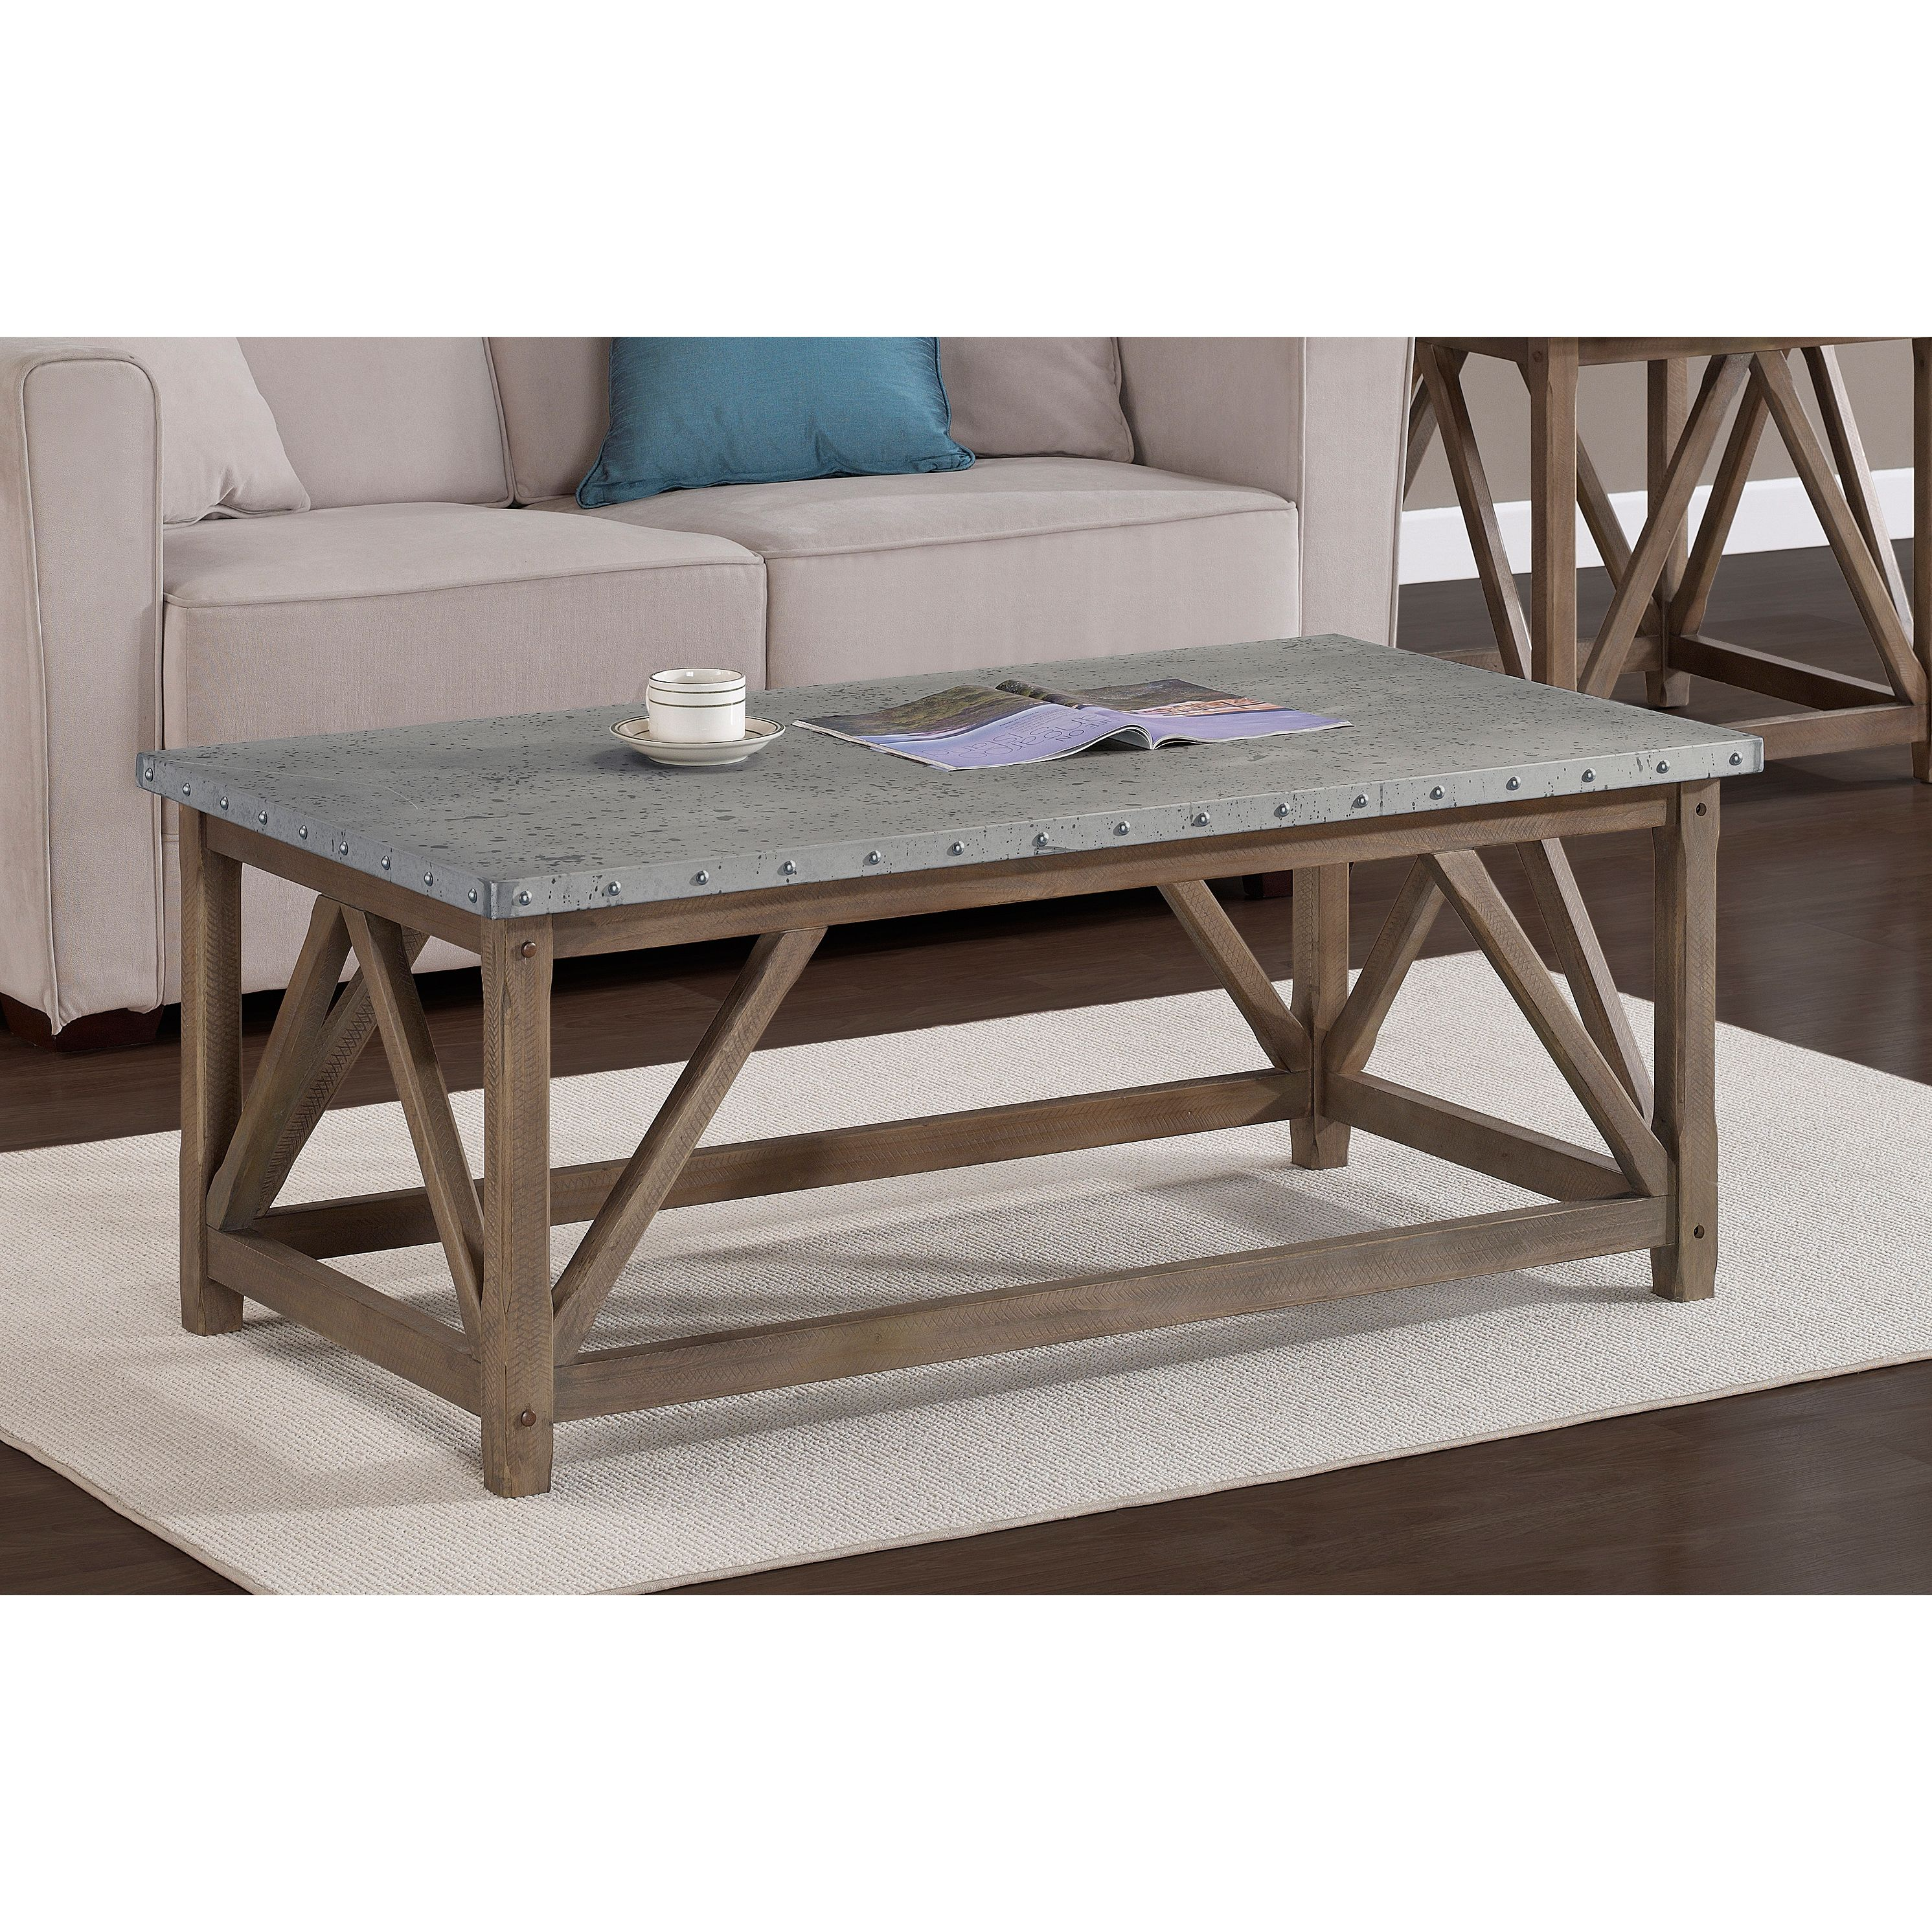 stylish accent your living room with this zinc top wood table coffee the nailhead details give unique look storage cabinets multi colored chest black pottery barn high end tables